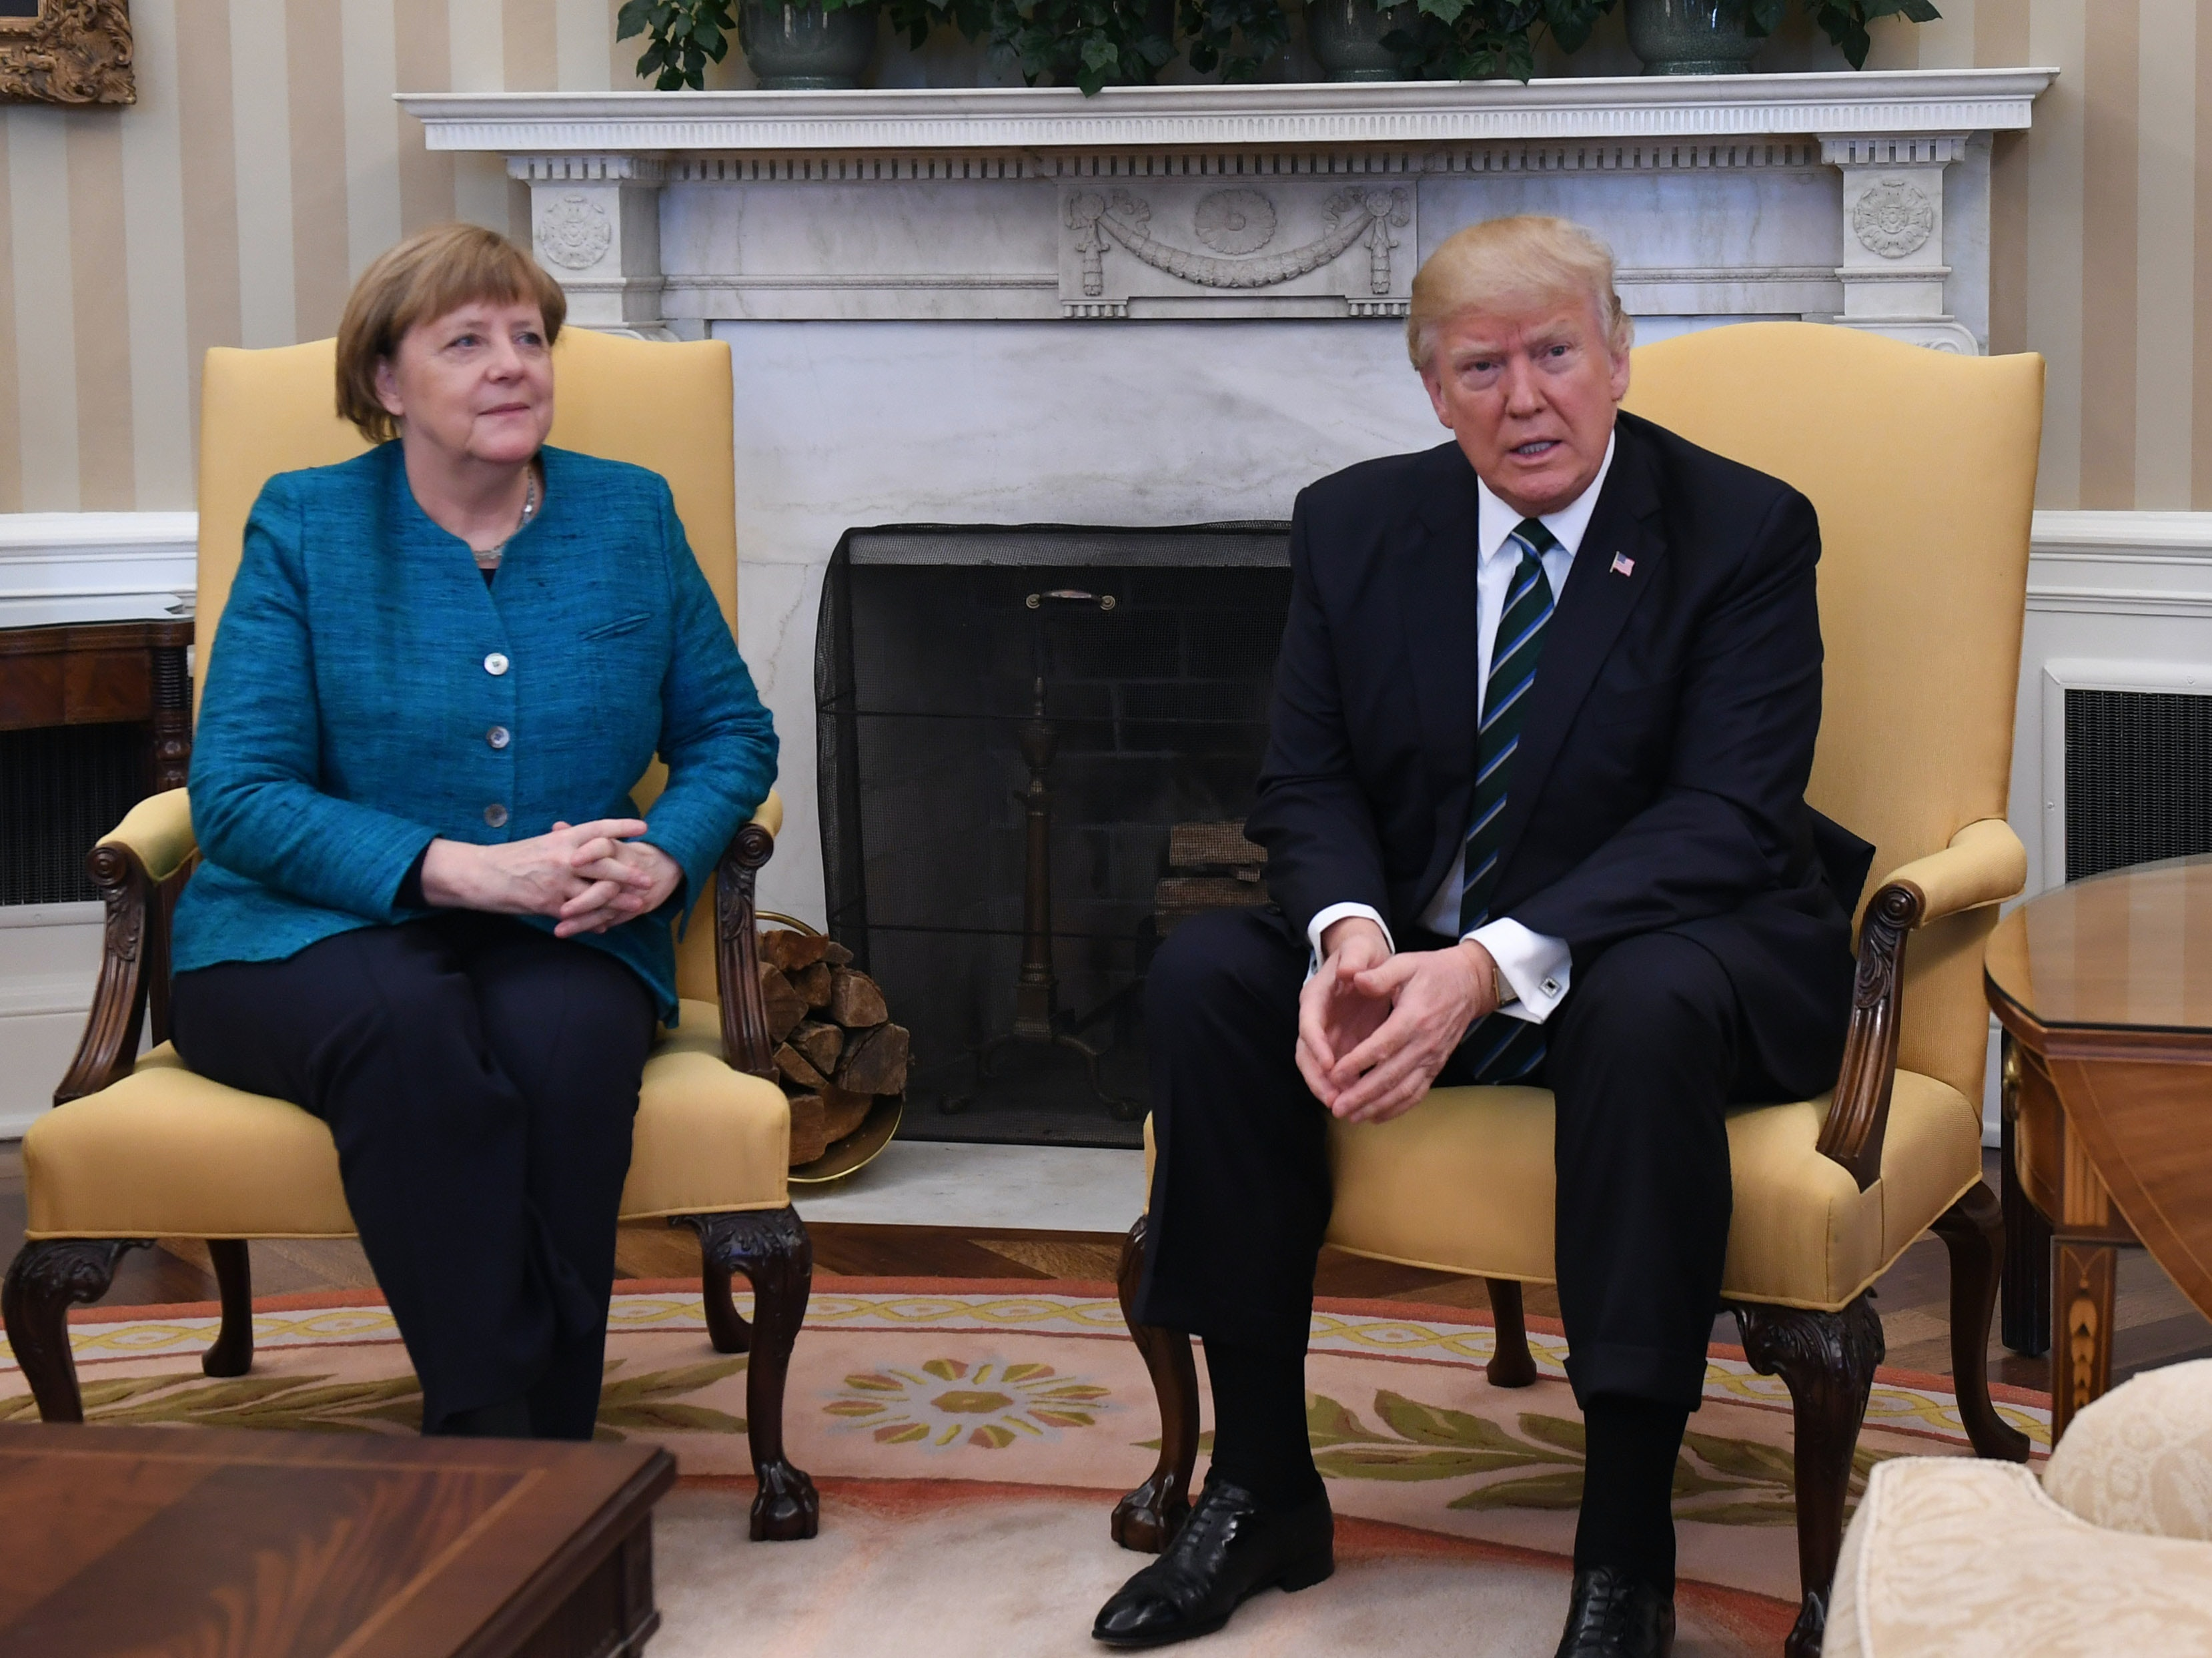 654496664 angela merkel handshake memes are a glorious gift from her meeting